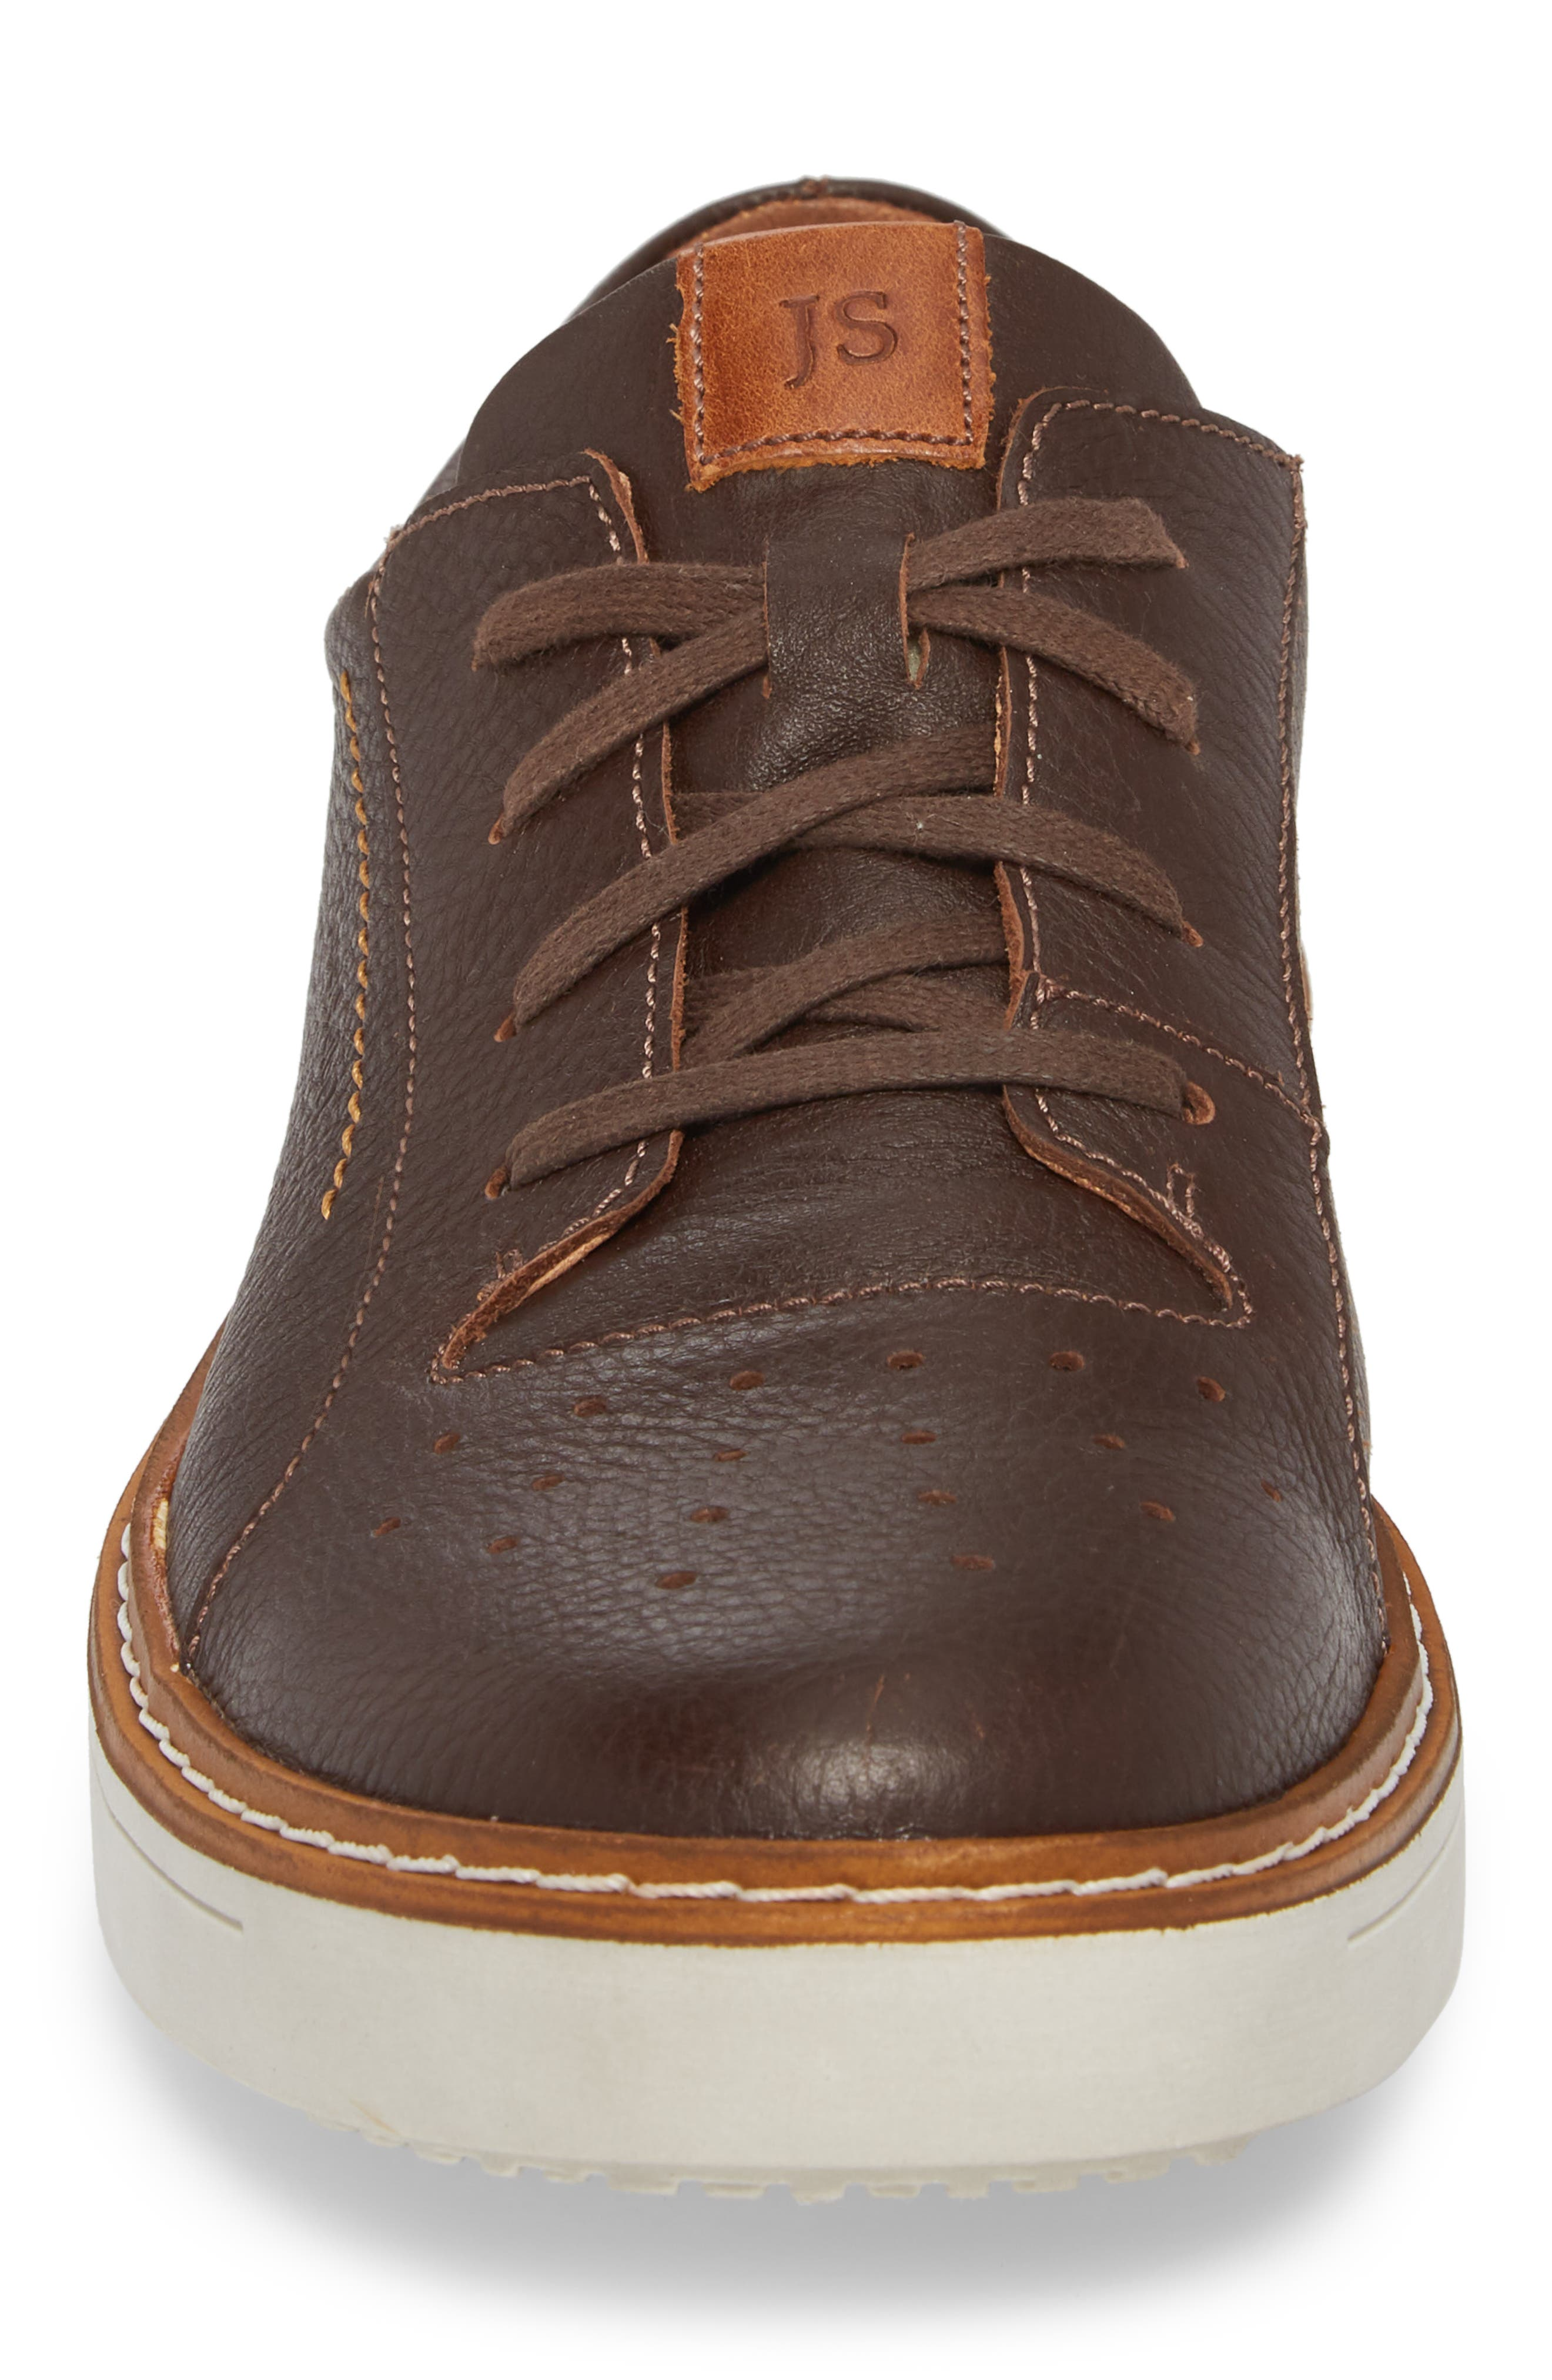 Quentin 03 Low Top Sneaker,                             Alternate thumbnail 4, color,                             Brown Kombi Leather